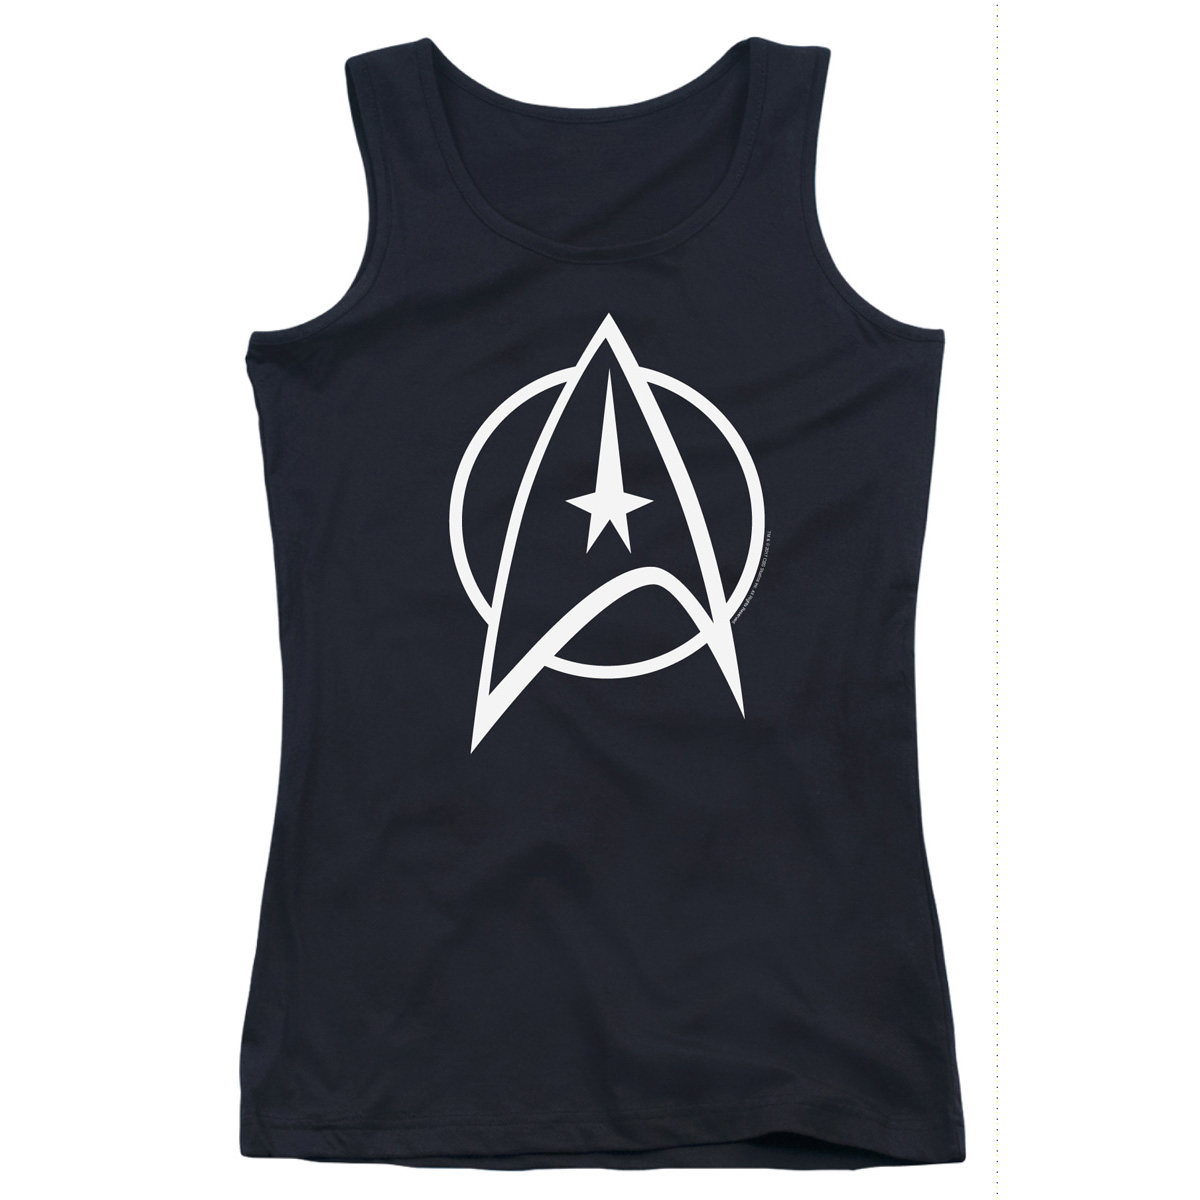 Star Trek The Original Series Delta Women's Tank